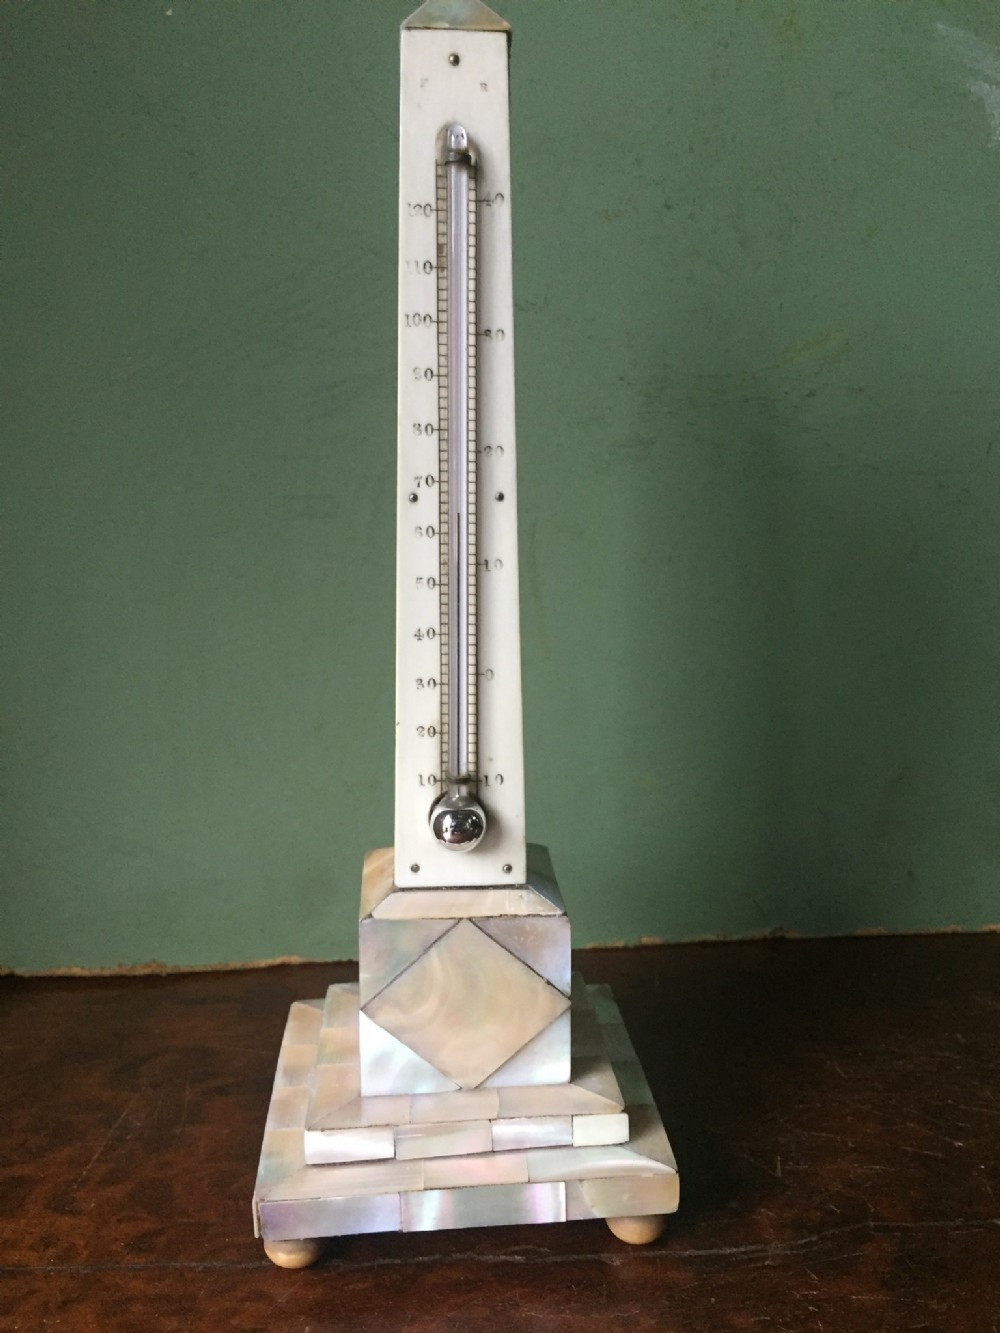 c19th 'mother of pearl' or nacreshell veneered desktop obelisk thermometer